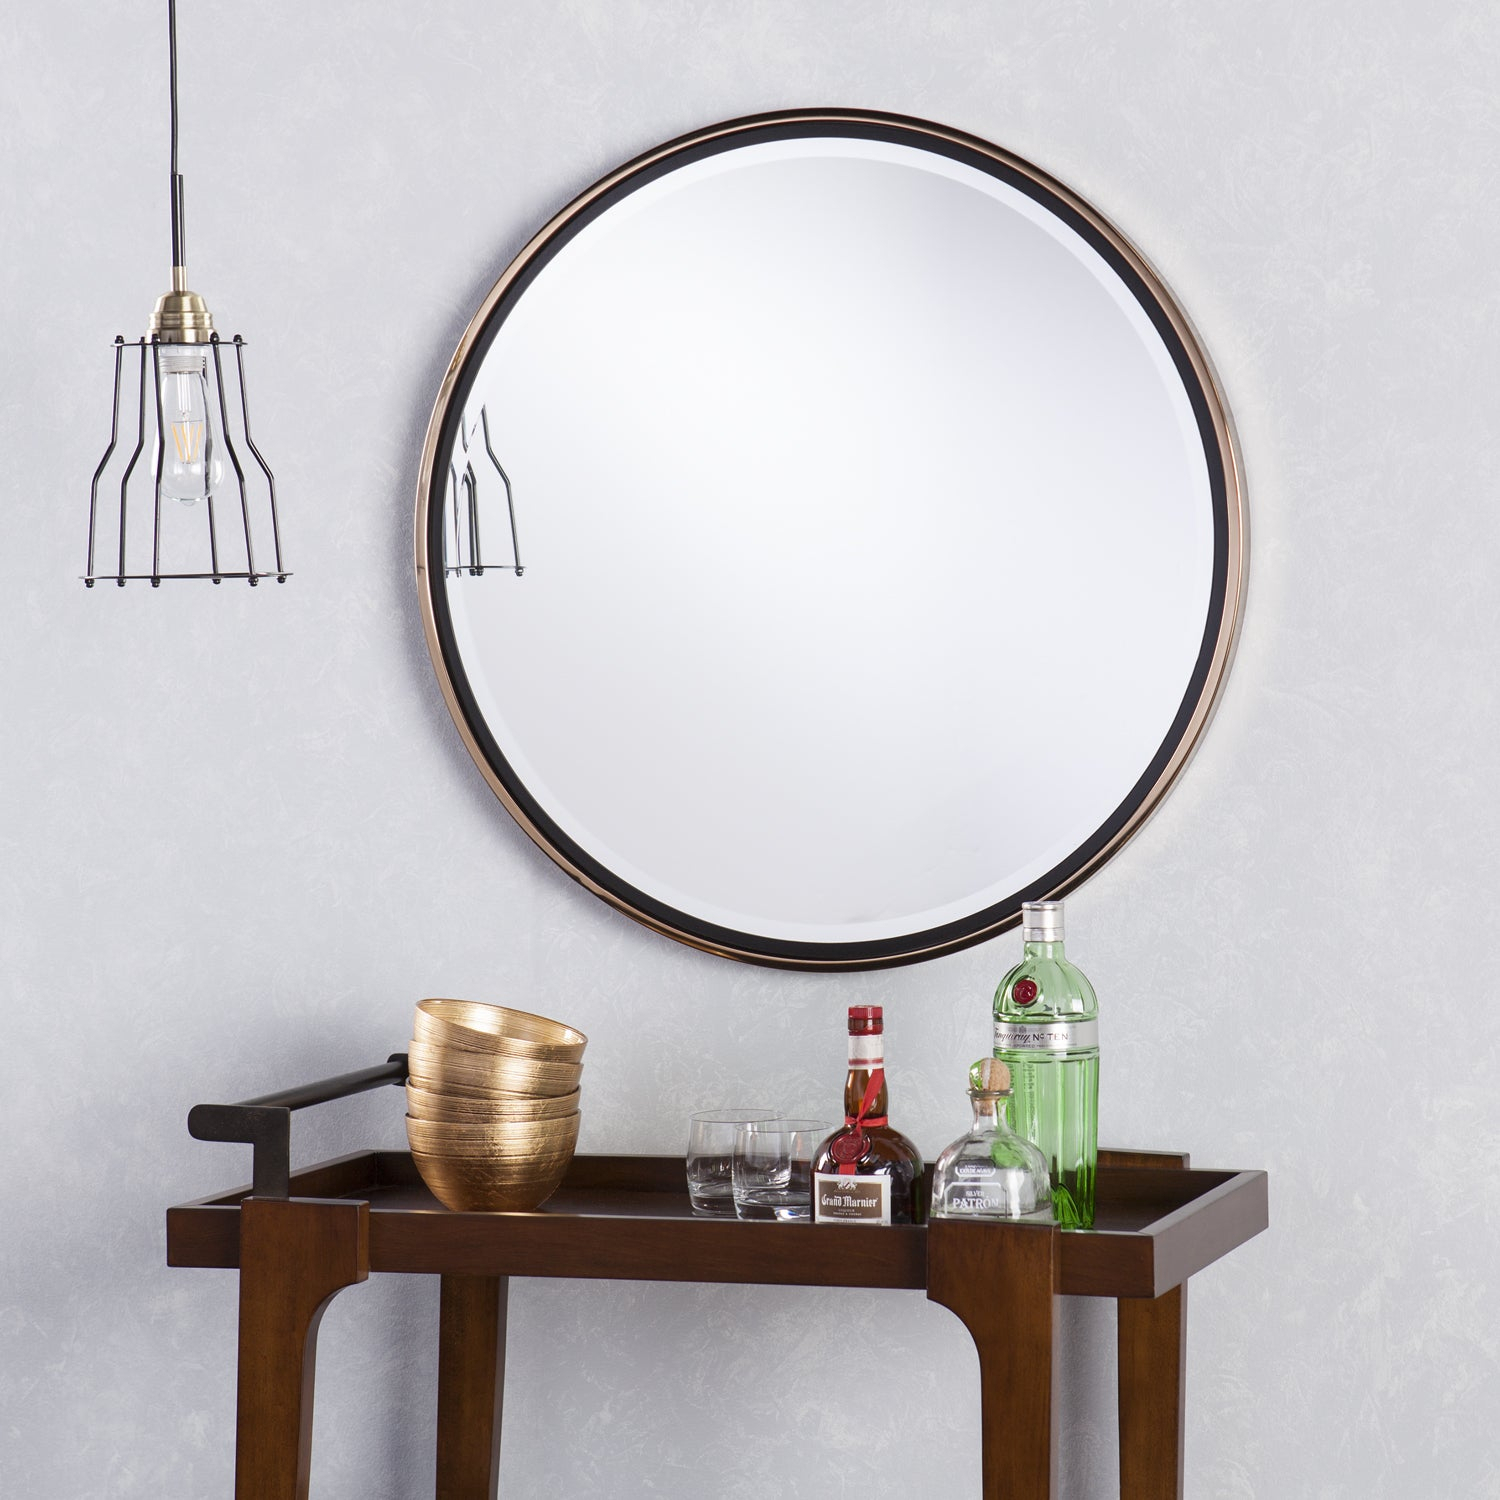 Accent Mirrors | Shop Online At Overstock For Derick Accent Mirrors (View 13 of 30)